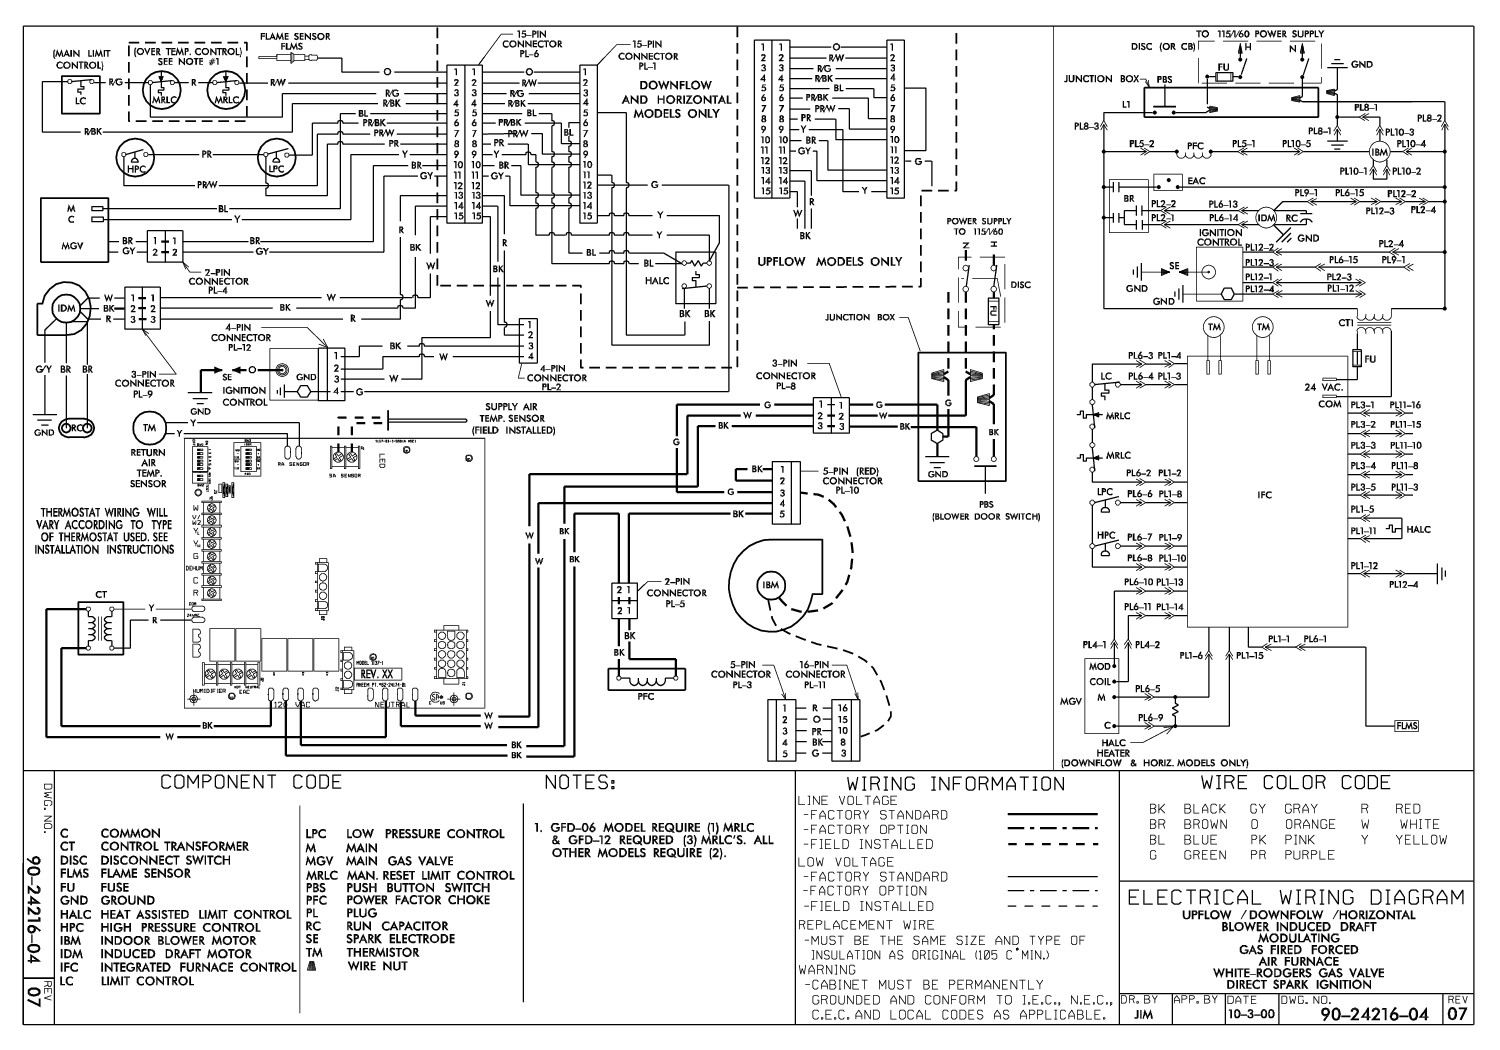 Heil Furnace Wiring Diagram from www.adinaporter.com